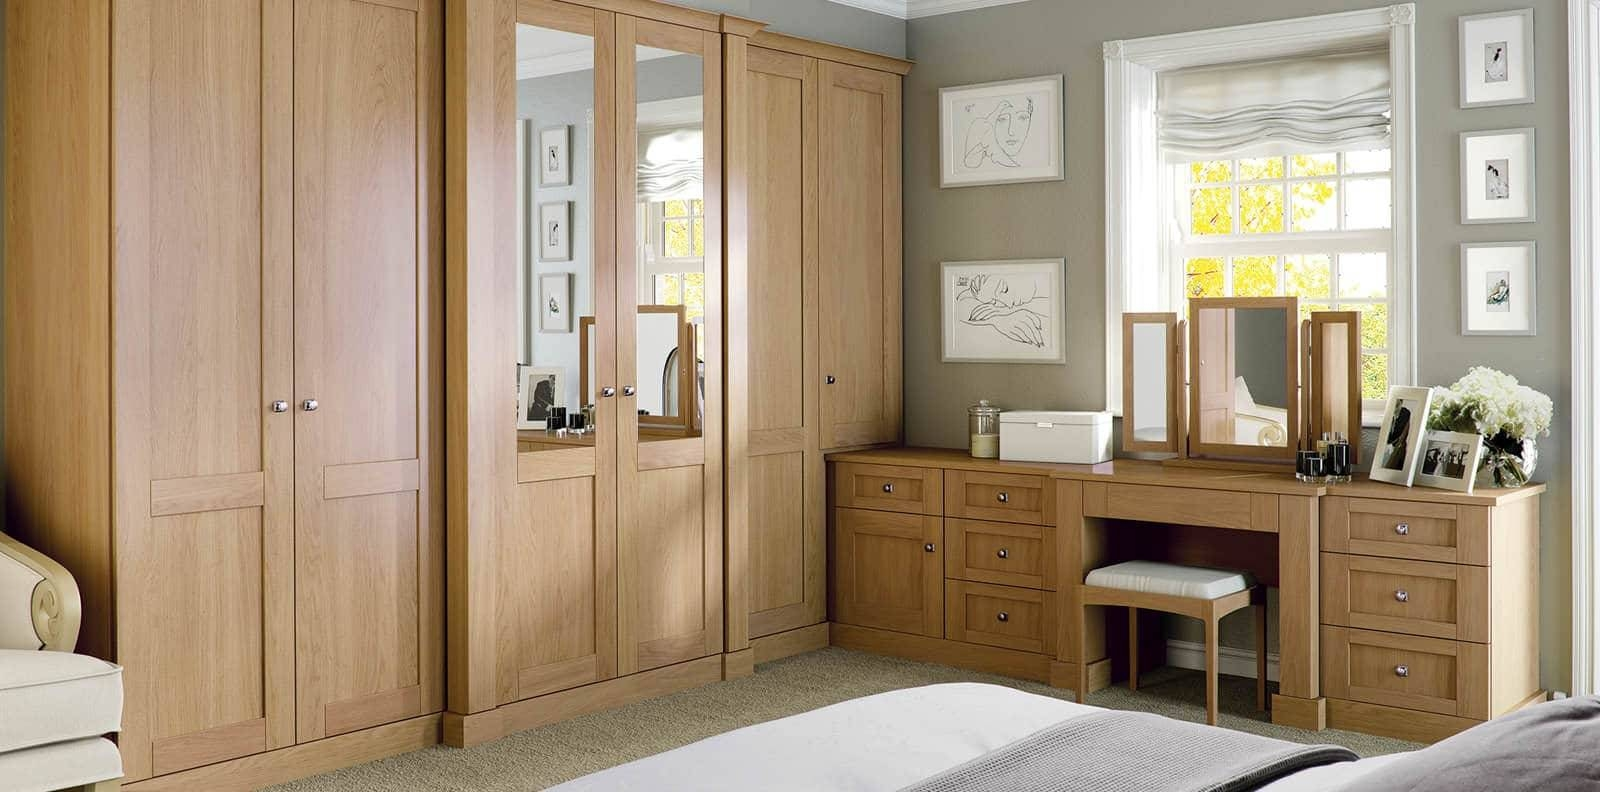 Bedroom : Bespoke Built In Fitted Wardrobe Mirrored Dark Wood Pertaining To Drawers For Fitted Wardrobes (View 14 of 30)